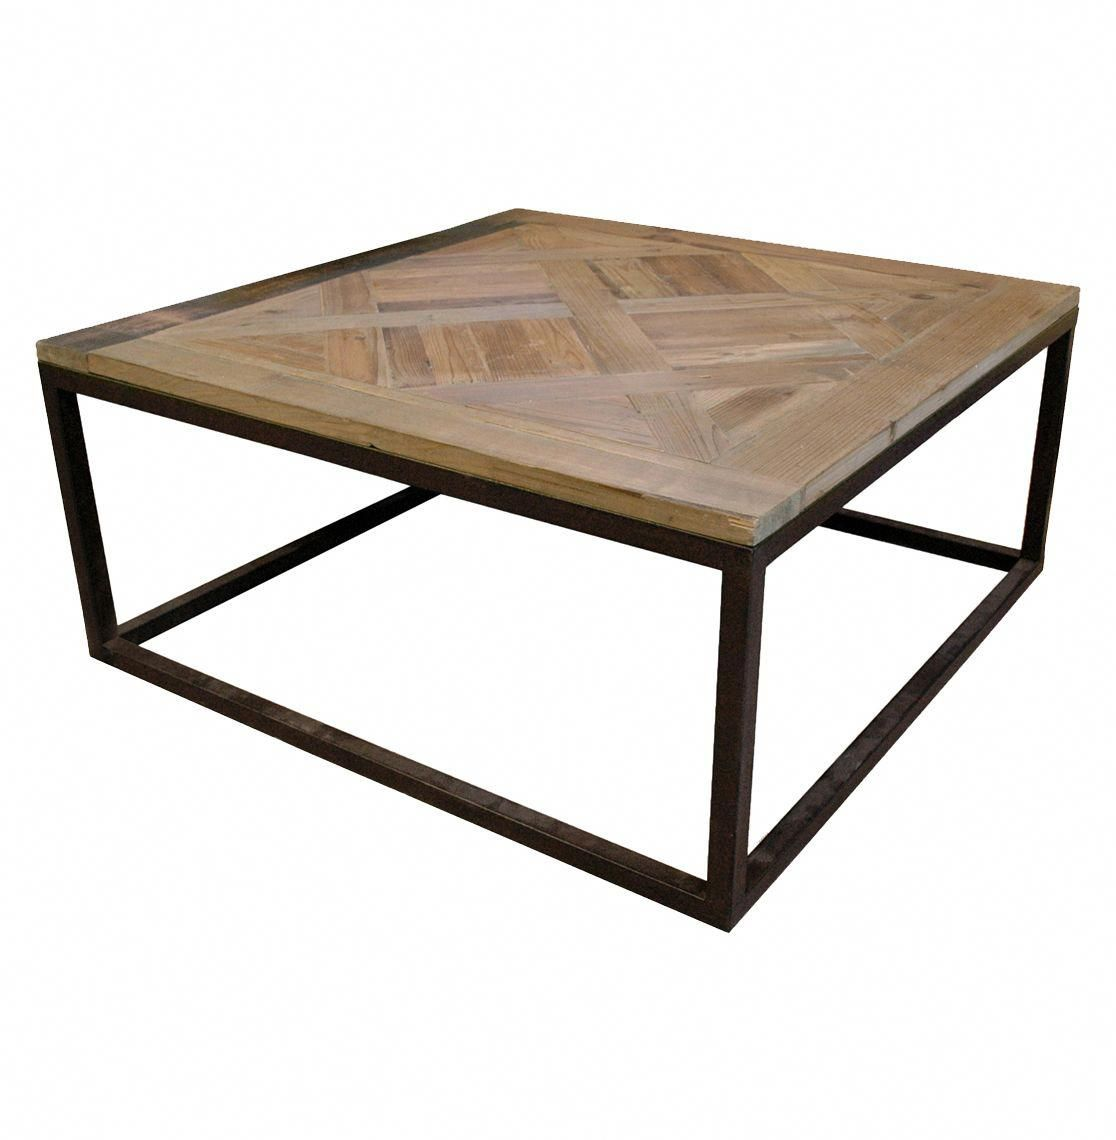 Gramercy Modern Rustic Reclaimed Parquet Wood Iron Coffee Table With Images Coffee Table Wood Iron Coffee Table Rustic Coffee Tables